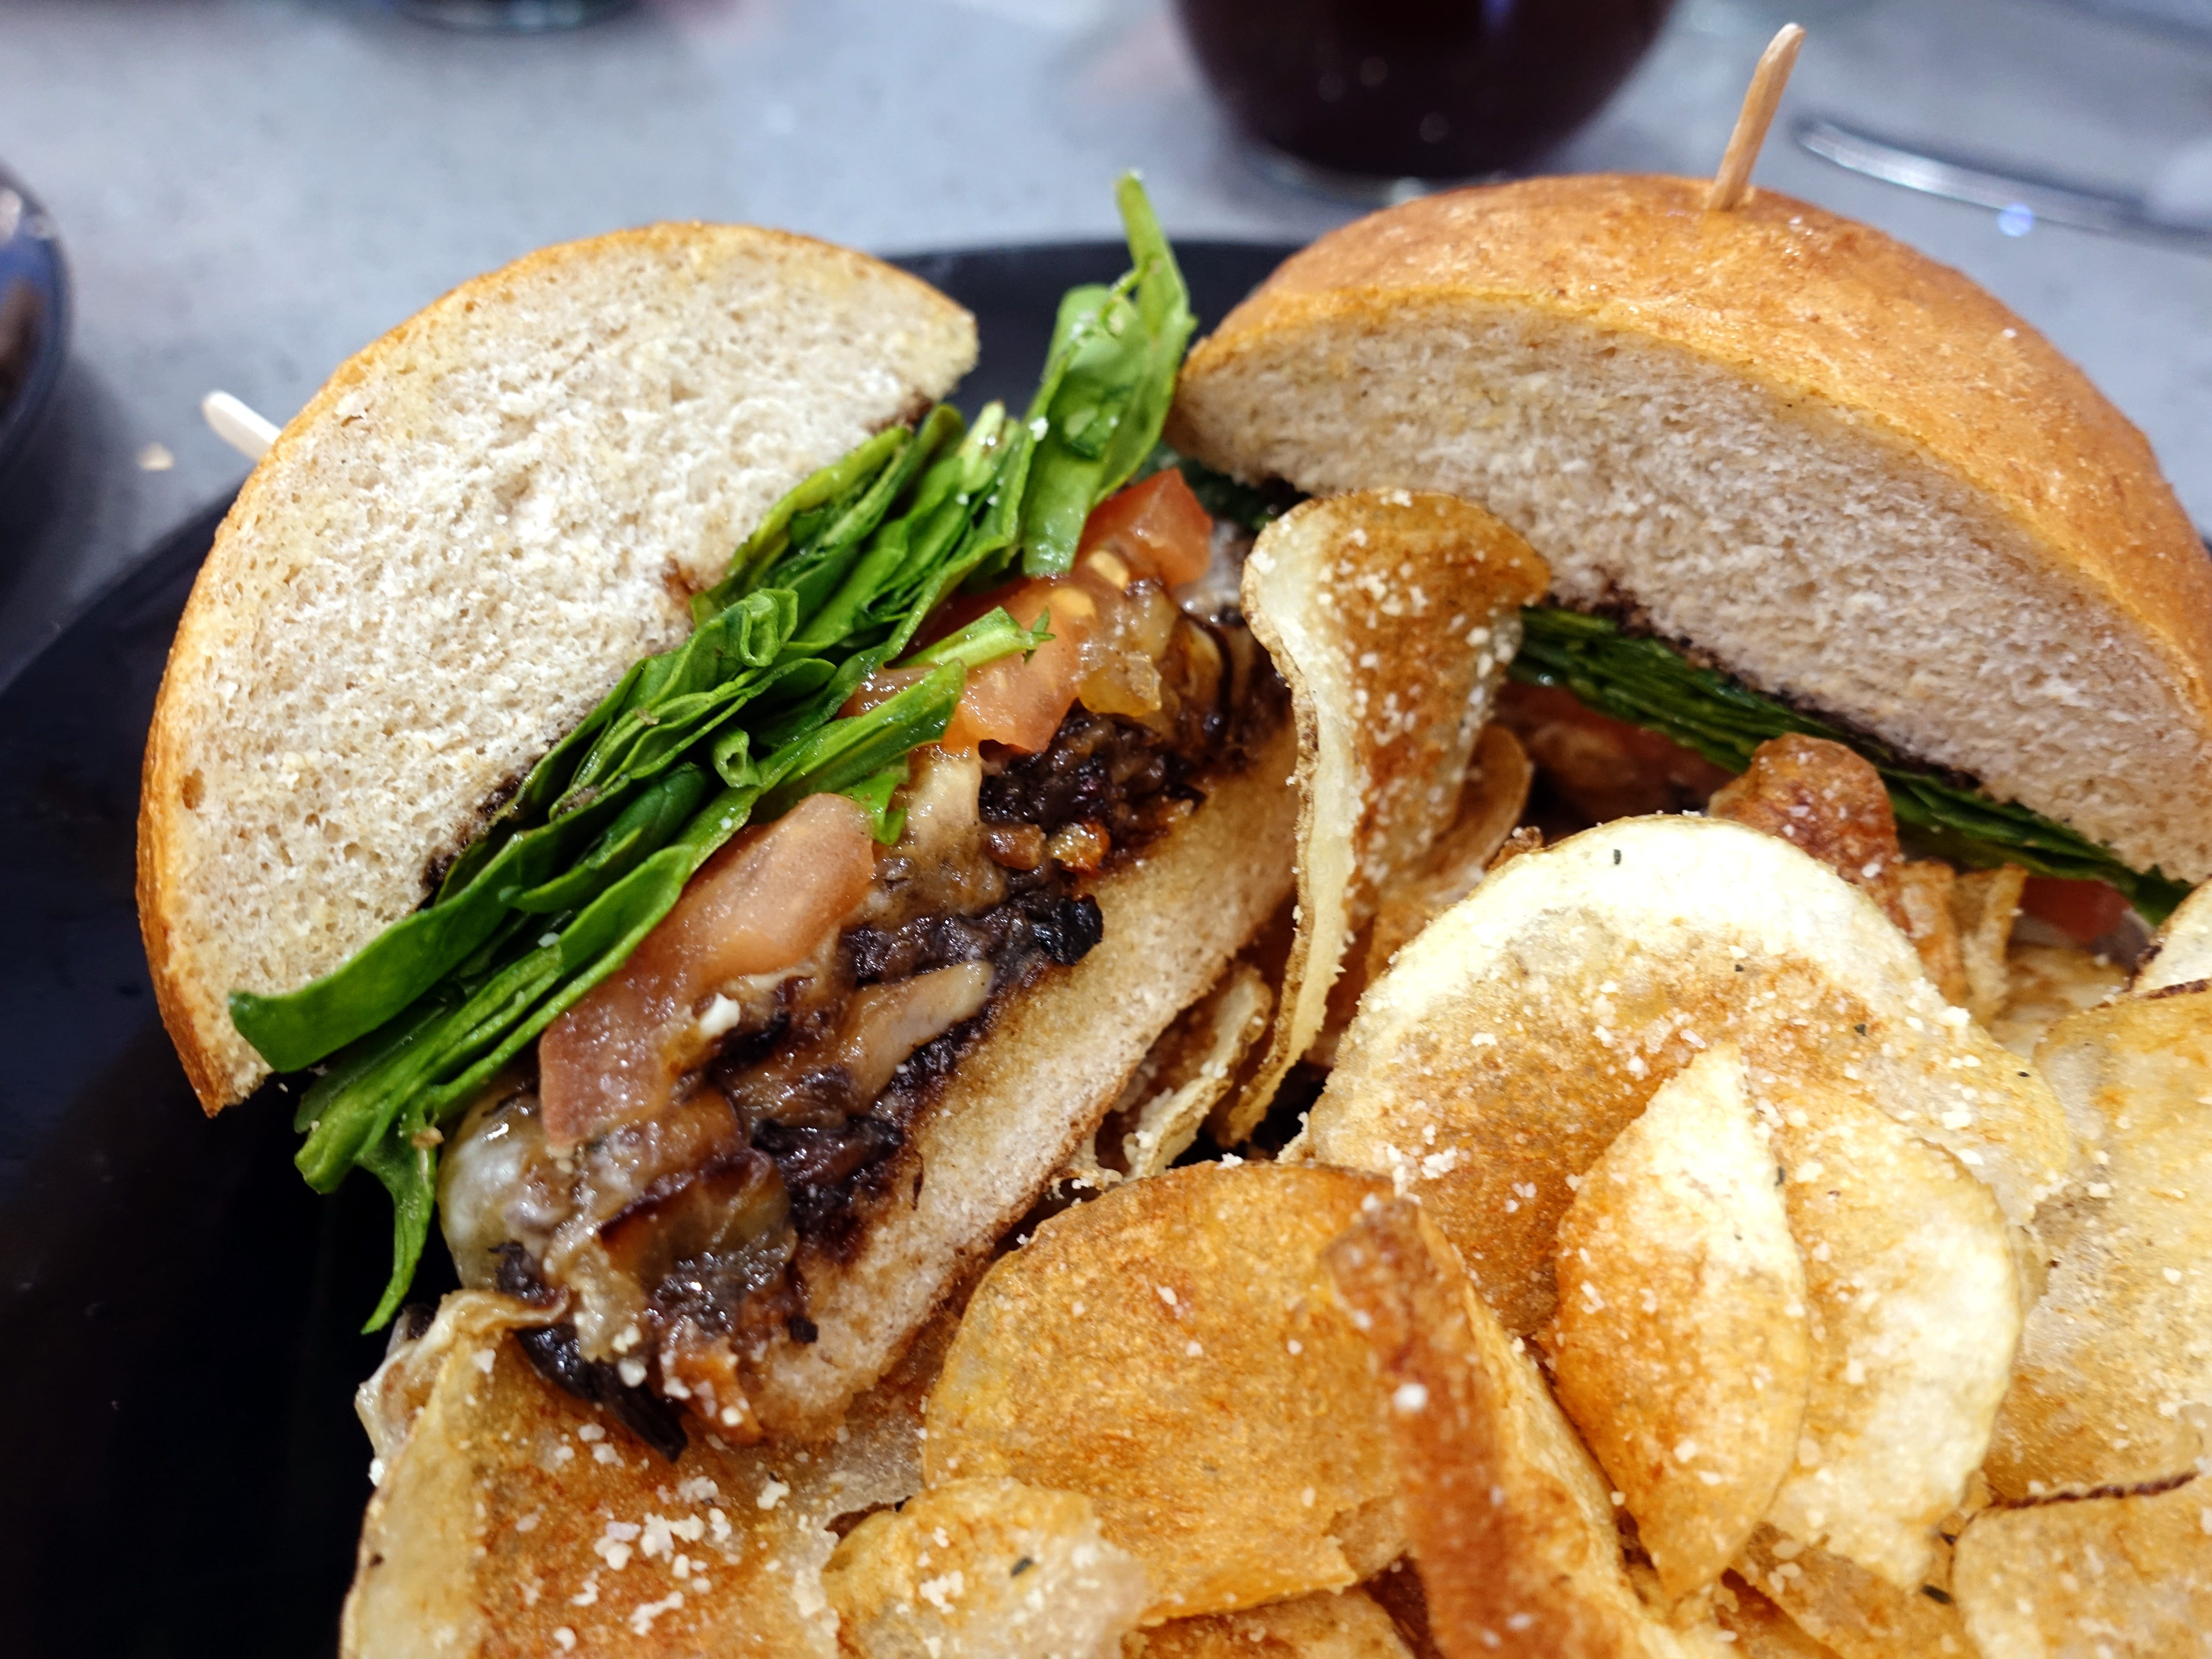 'We Forgot the Meat!' with sauteed mushrooms, caramelized onions, provolone, balsamic glaze, fresh spinach, tomato and roasted garlic olive oil at Sweetest Season Artisan Eatery in Tempe.